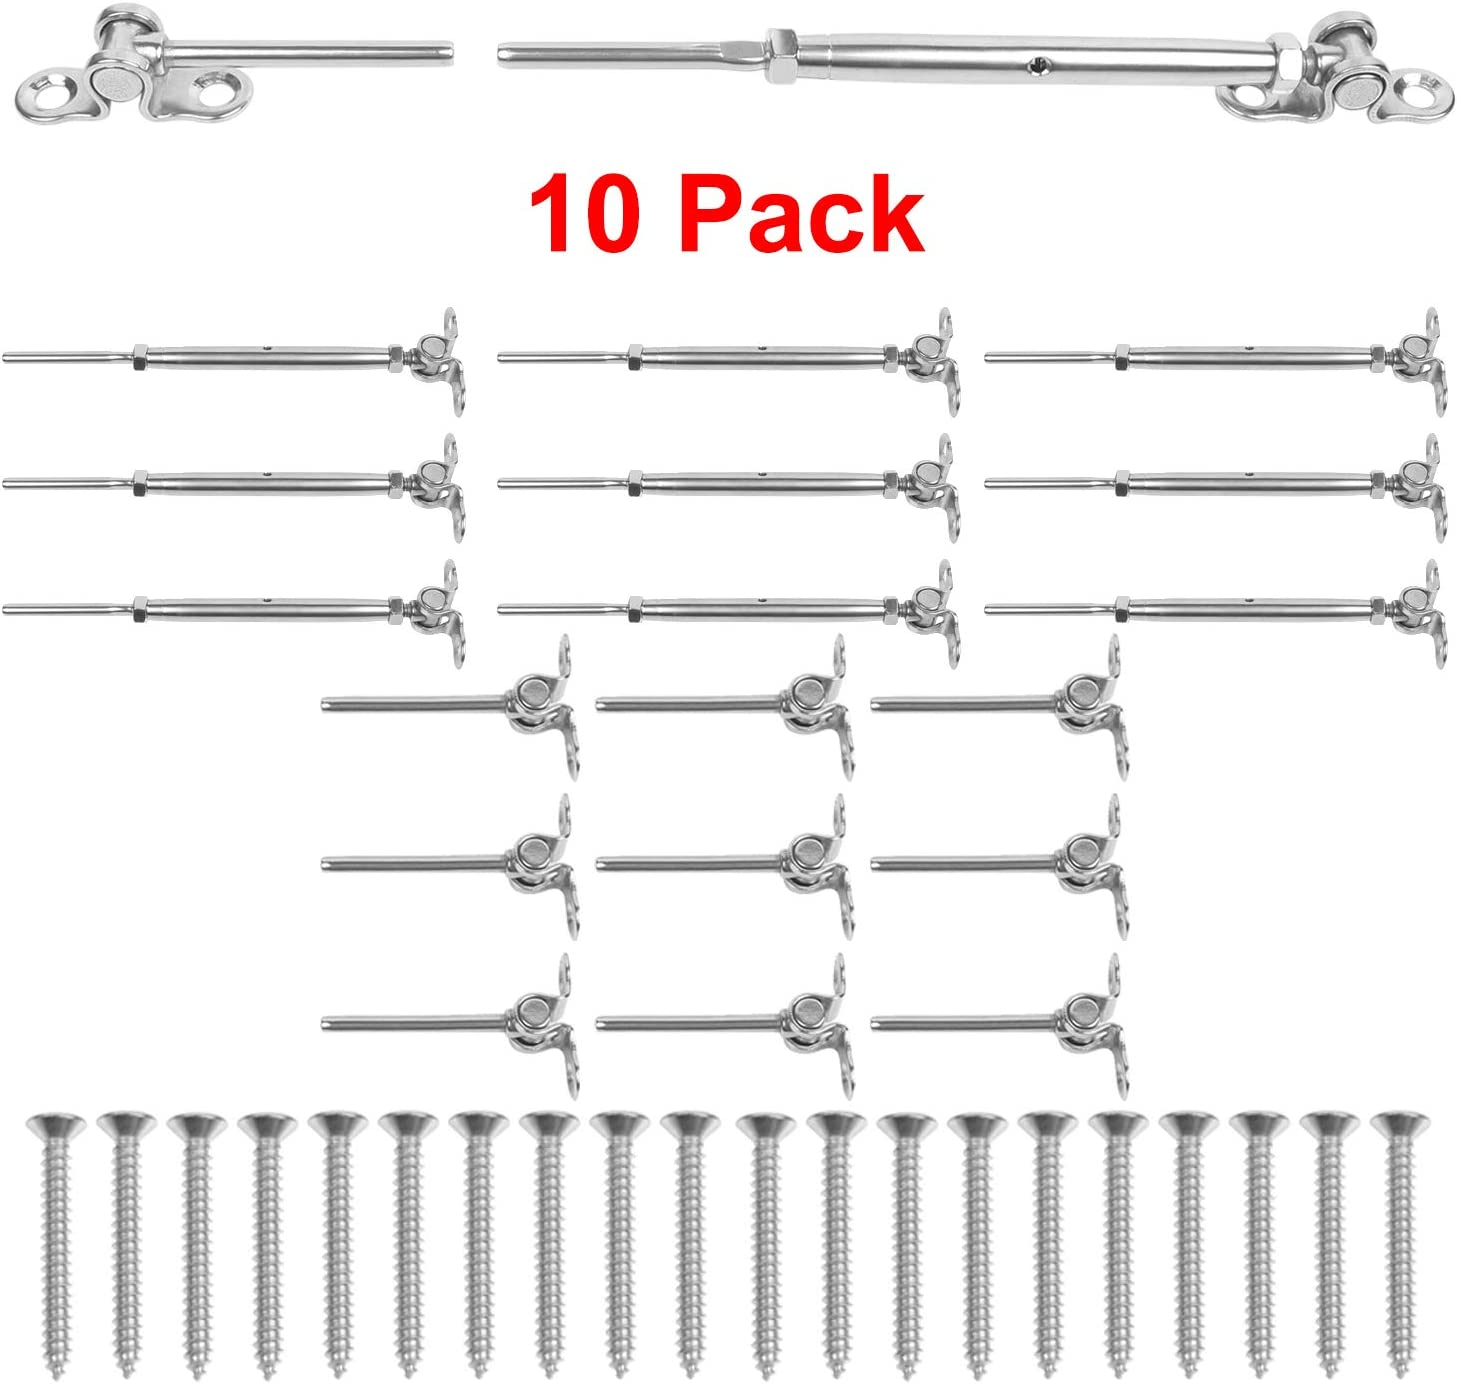 10Pack 316 Stainless Steel Cable Railing Kits fit 1//8 Stainless Steel Wire Rope Cable,Deck Toggle Turnbuckle /& Deck Toggle End for Stair Deck Railing Tool/&Home